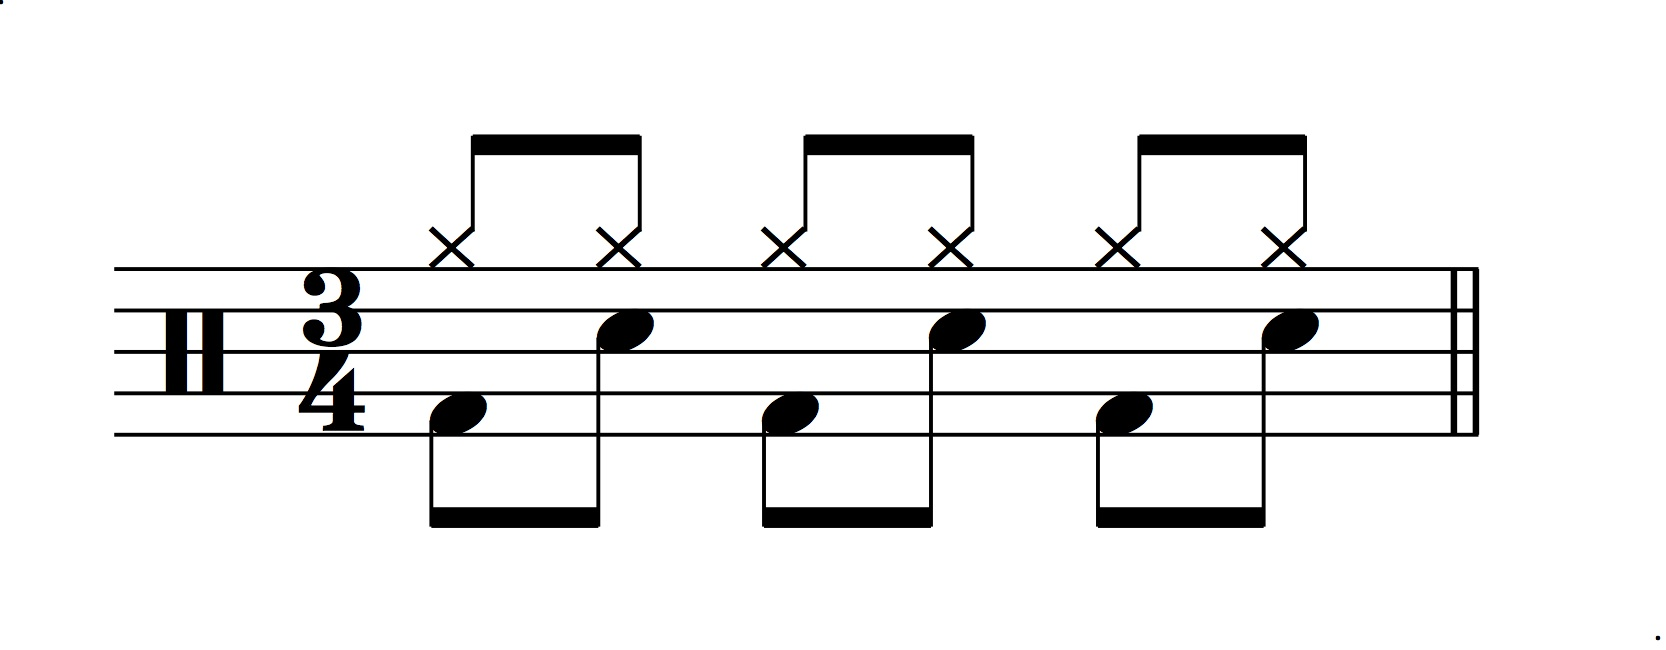 Figure 13.: Double-time drum feel in 3/4.